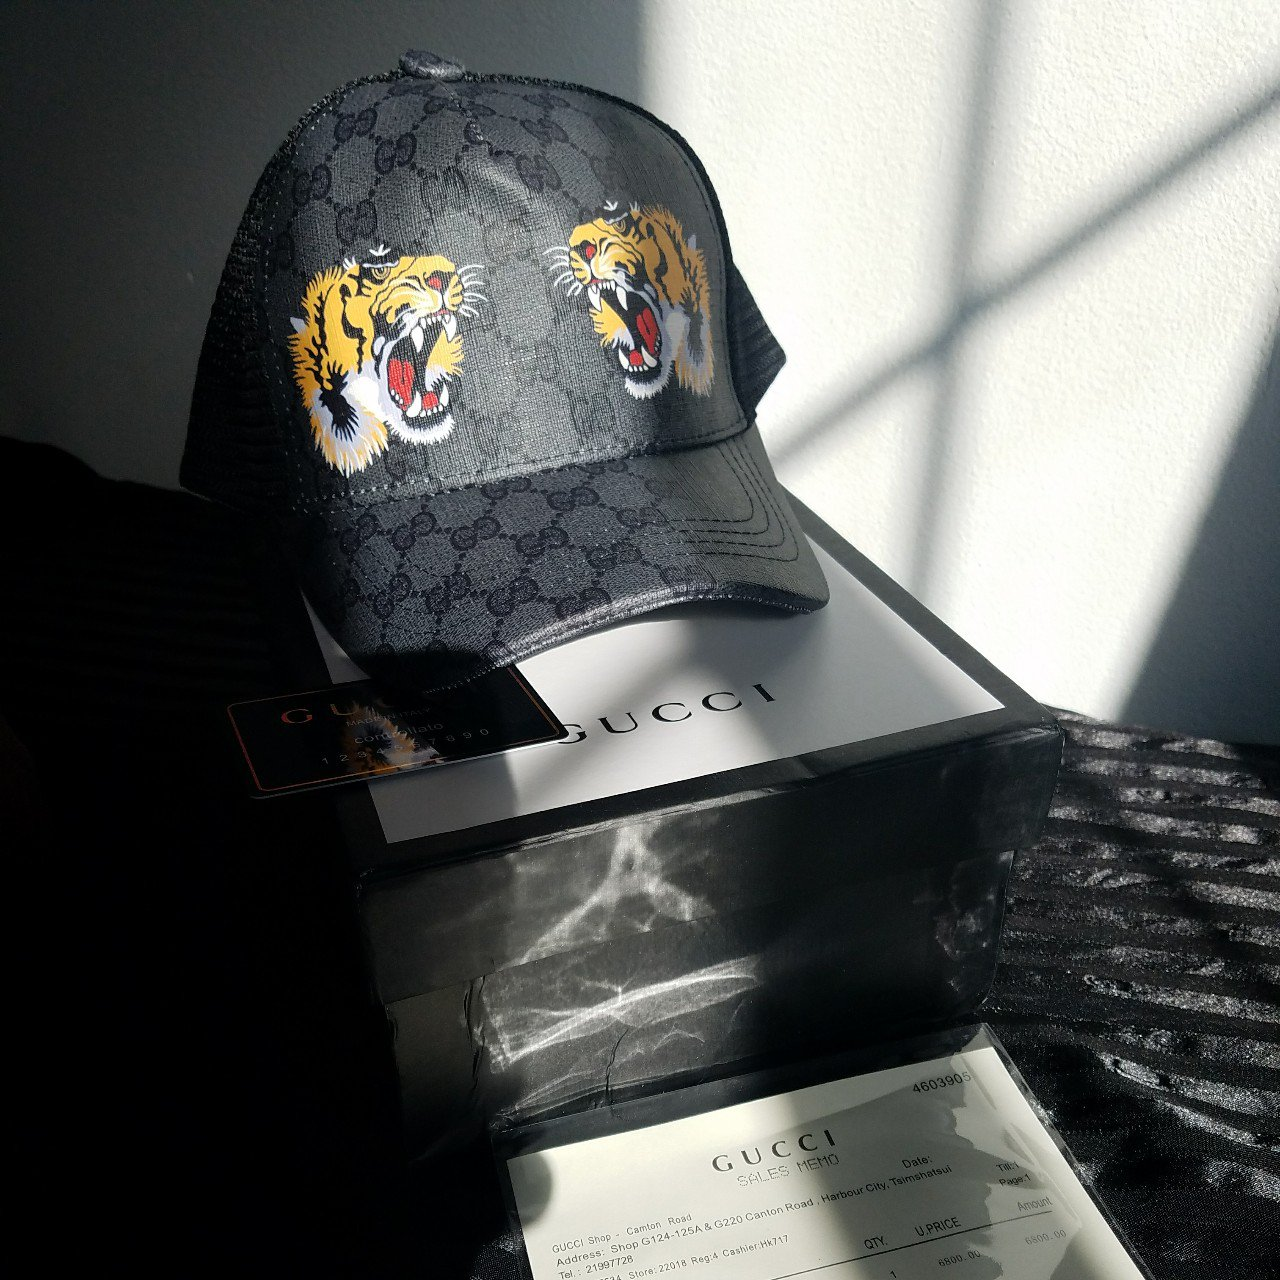 GUCCI HAT brand new size fits all snap back edition comes - Depop 20981ef0e43